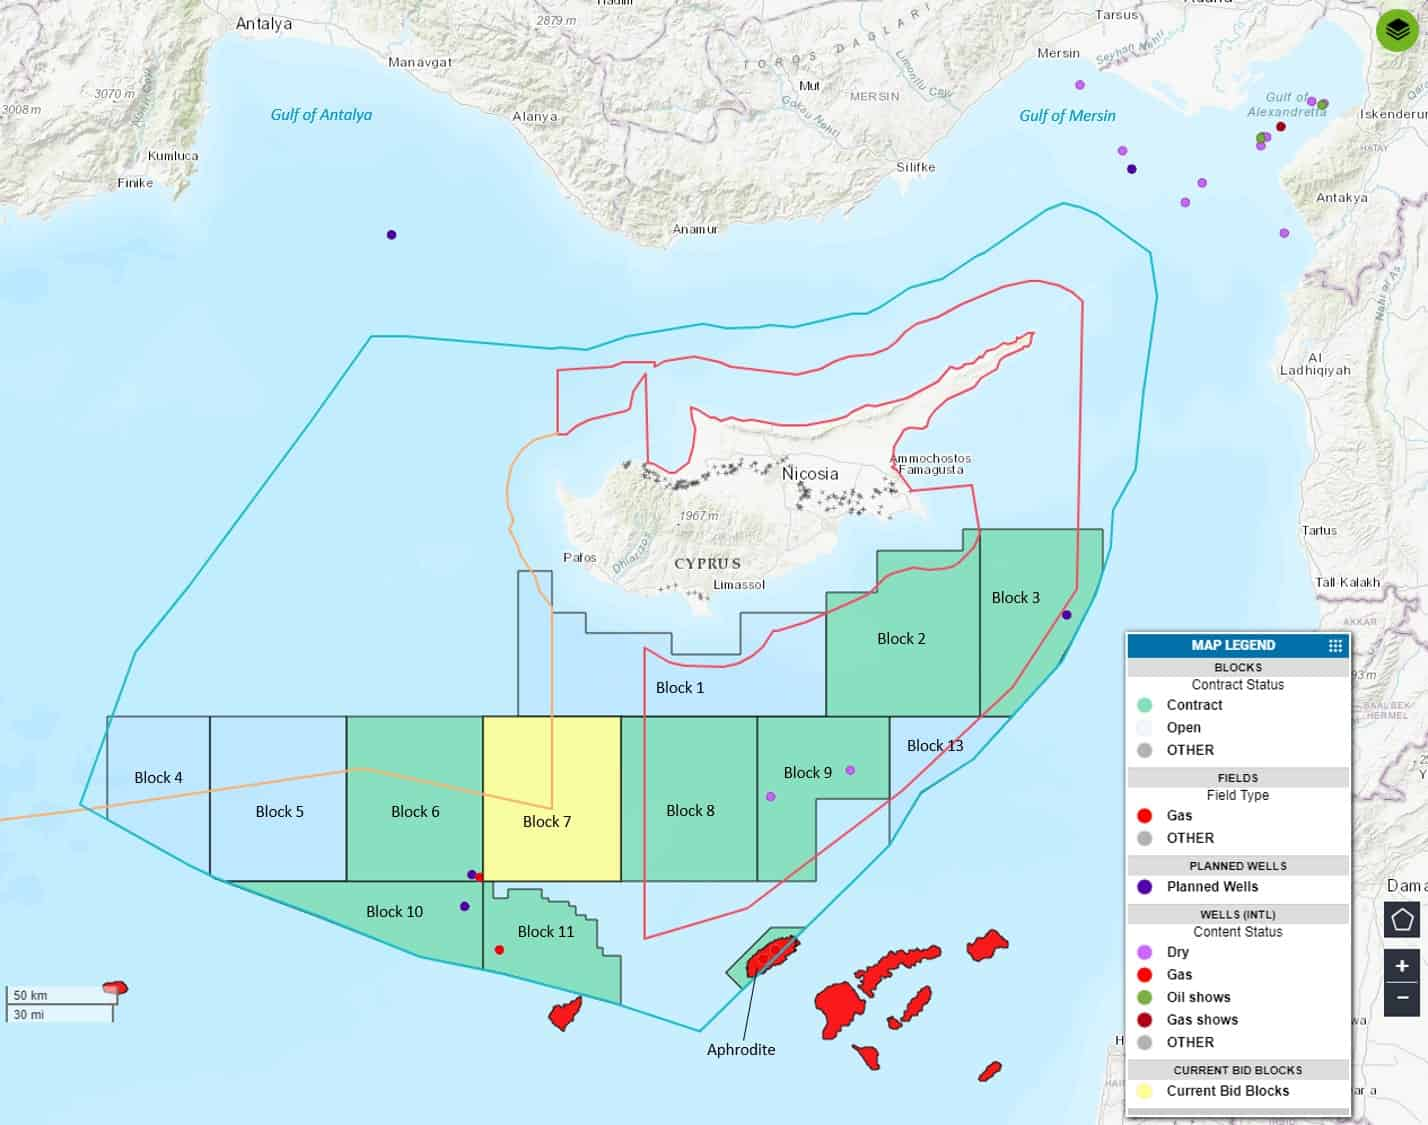 Figure 1. RoC demarcated offshore blocks and exploration wells. Also shown are the RoC's proclaimed and partly agreed EEZ (light blue line), the TRNC's proclaimed EEZ and outline of demarcated blocks (red line), the outer limits of the continental shelf as claimed by Turkey (orange line), as well as Turkey's offshore exploration wells. *